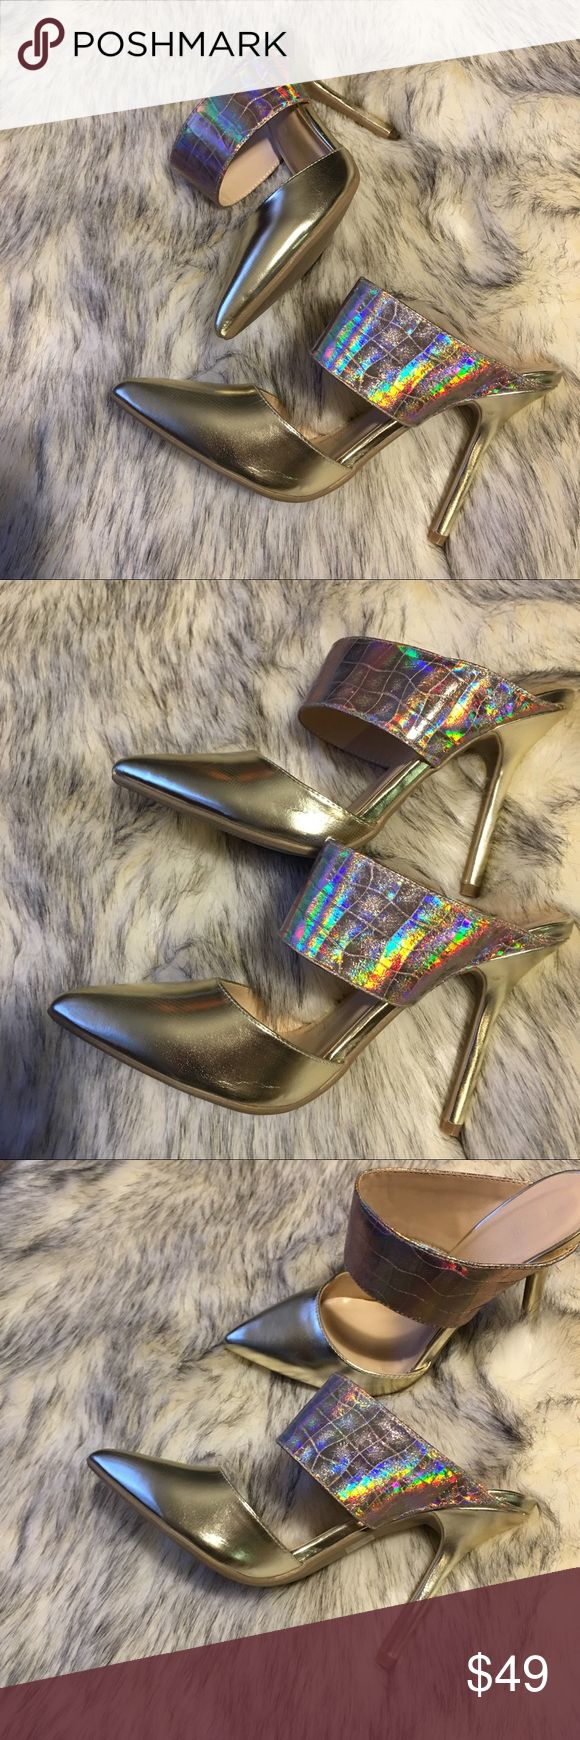 """Pointy toe stiletto pumps 👠 Grid print holographic vegan leather instep strap, lightly cushioned insole , wrapped stiletto heels and slip on style , height approx 4.6"""". New  without box , never worn Wild Diva Shoes Heels"""